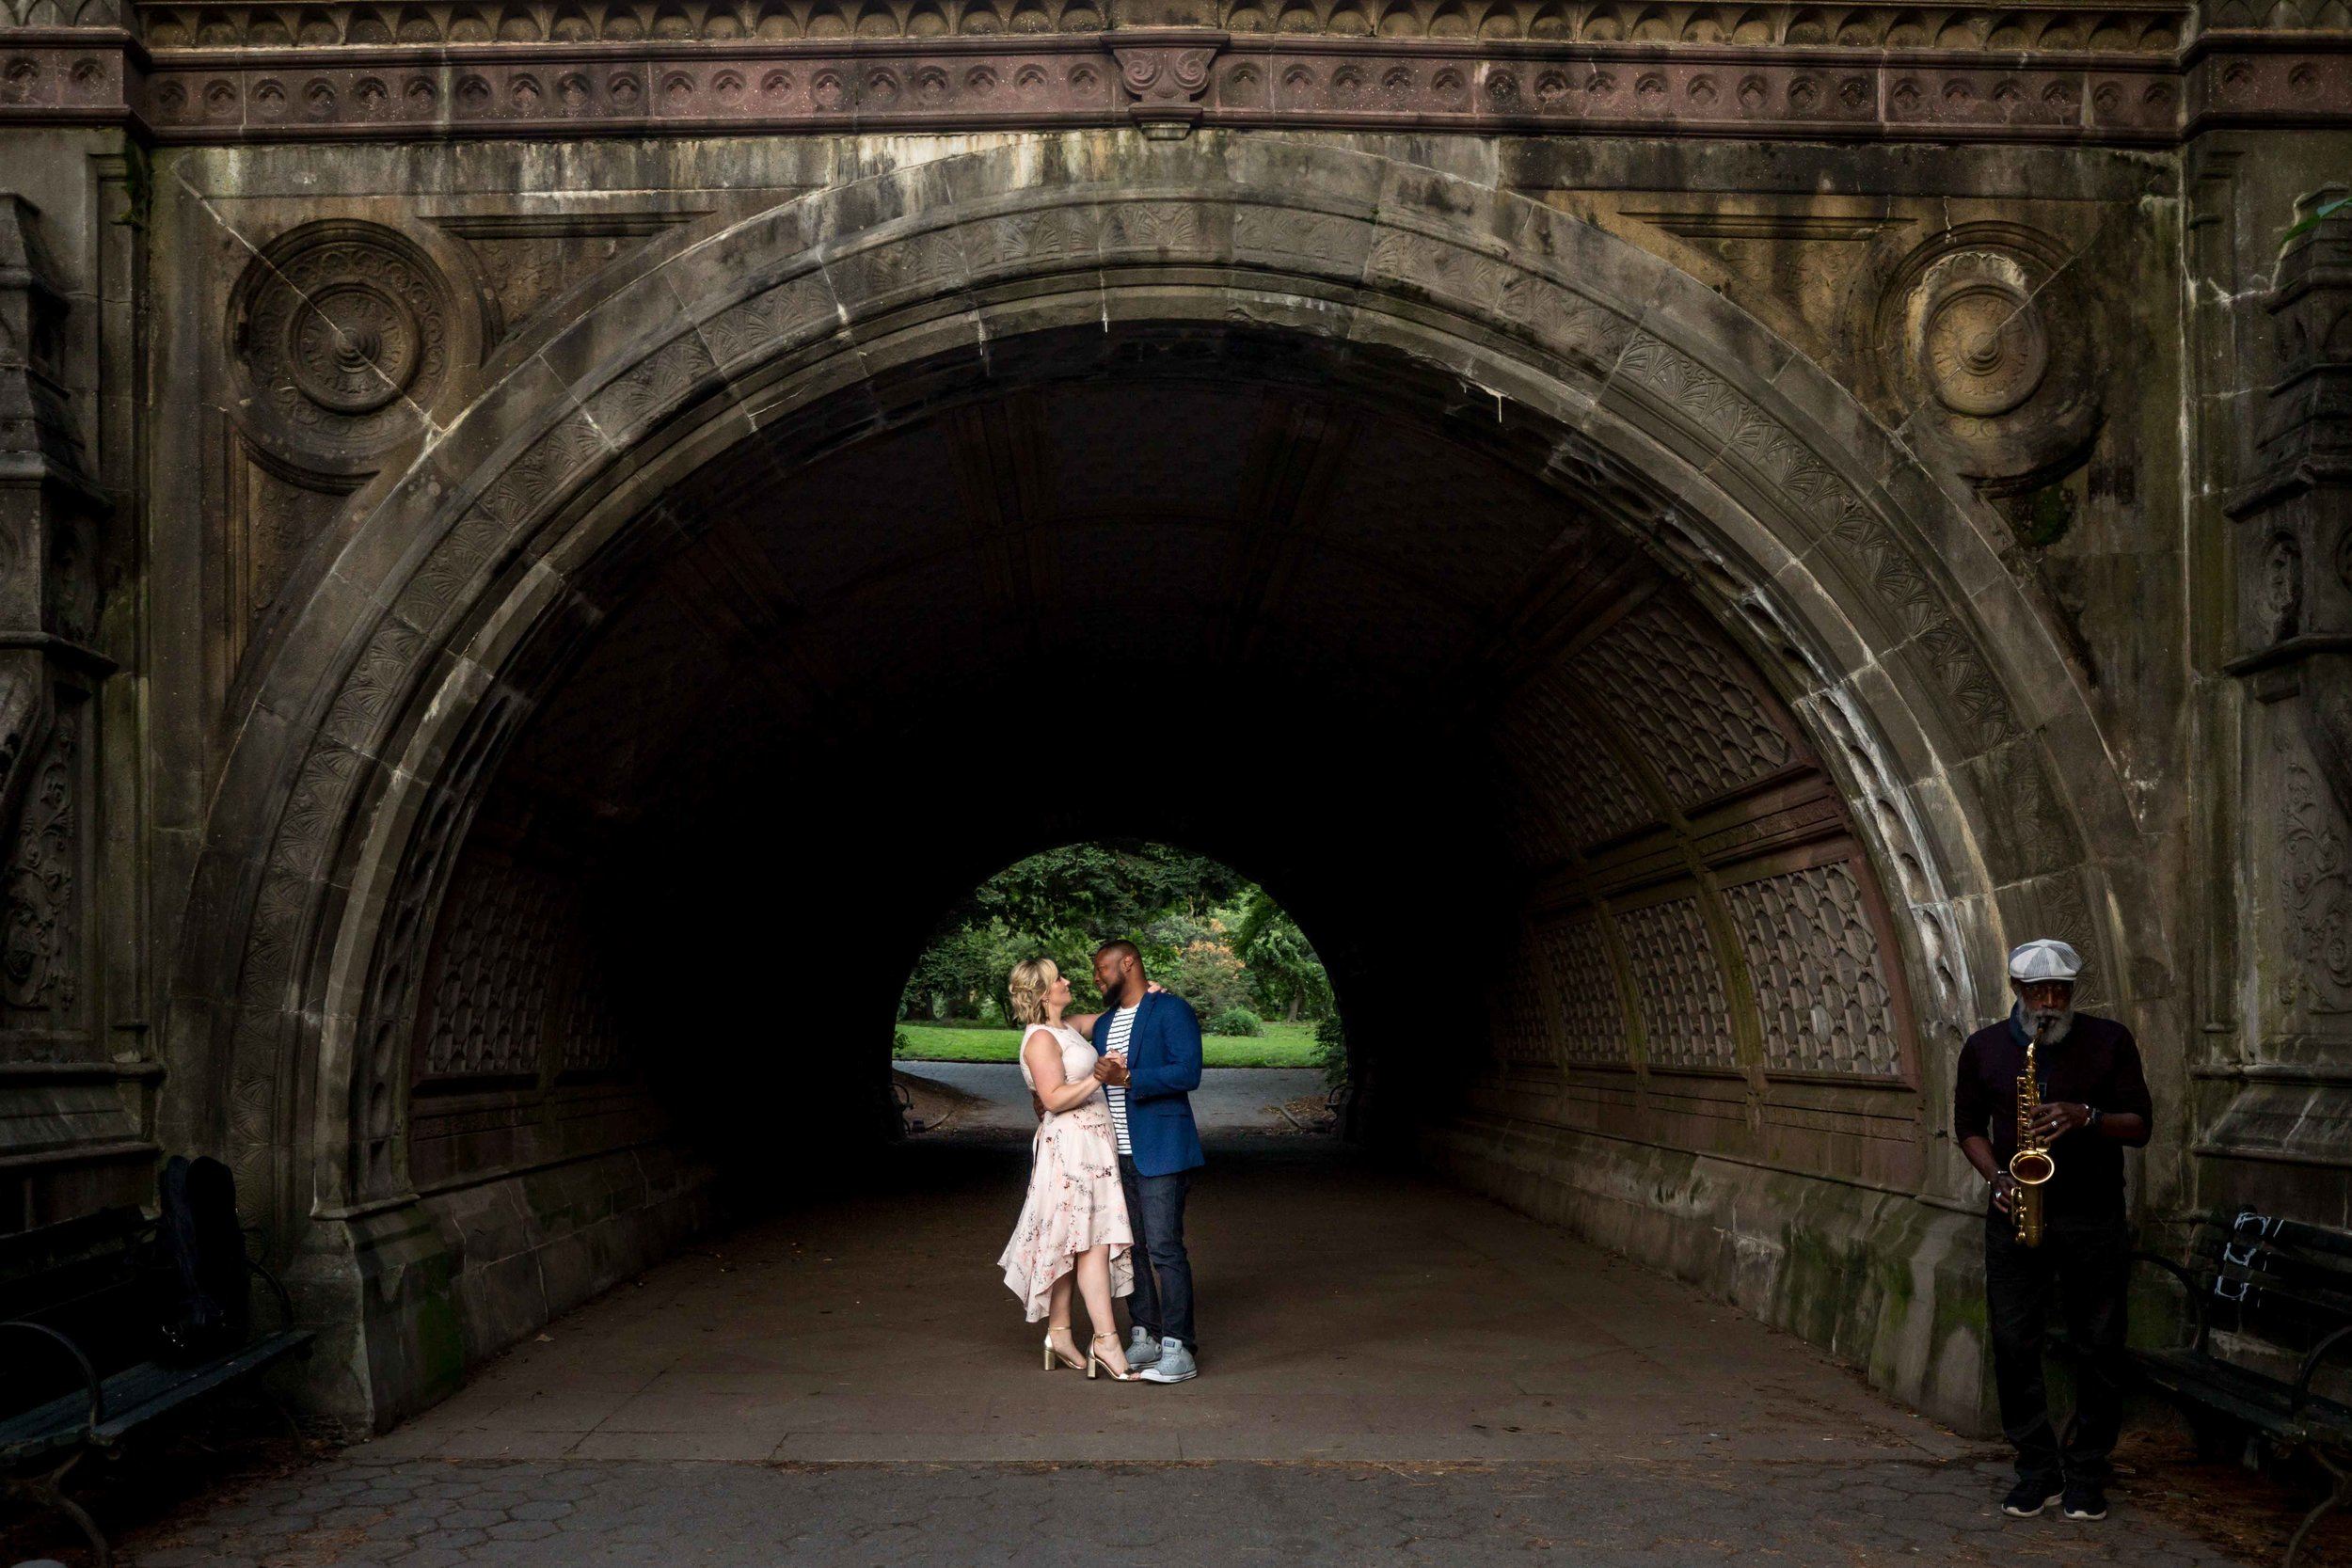 Prospect Park Engagement Photo Shoot Brooklyn NYC New York Wedding Photographer